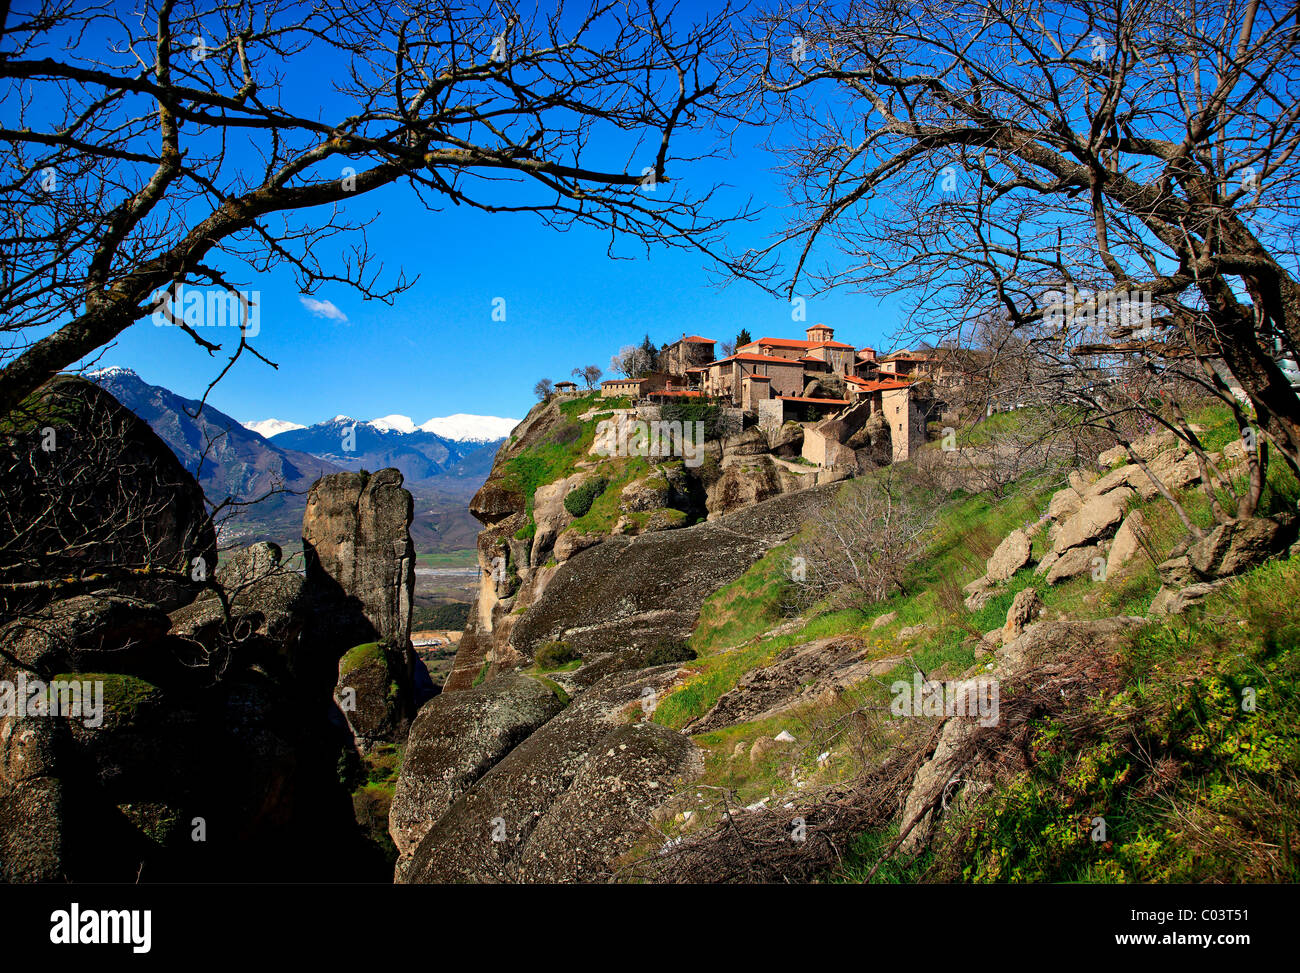 Greece, Meteora. On the upper right part the Great Meteoron monastery, - Stock Image